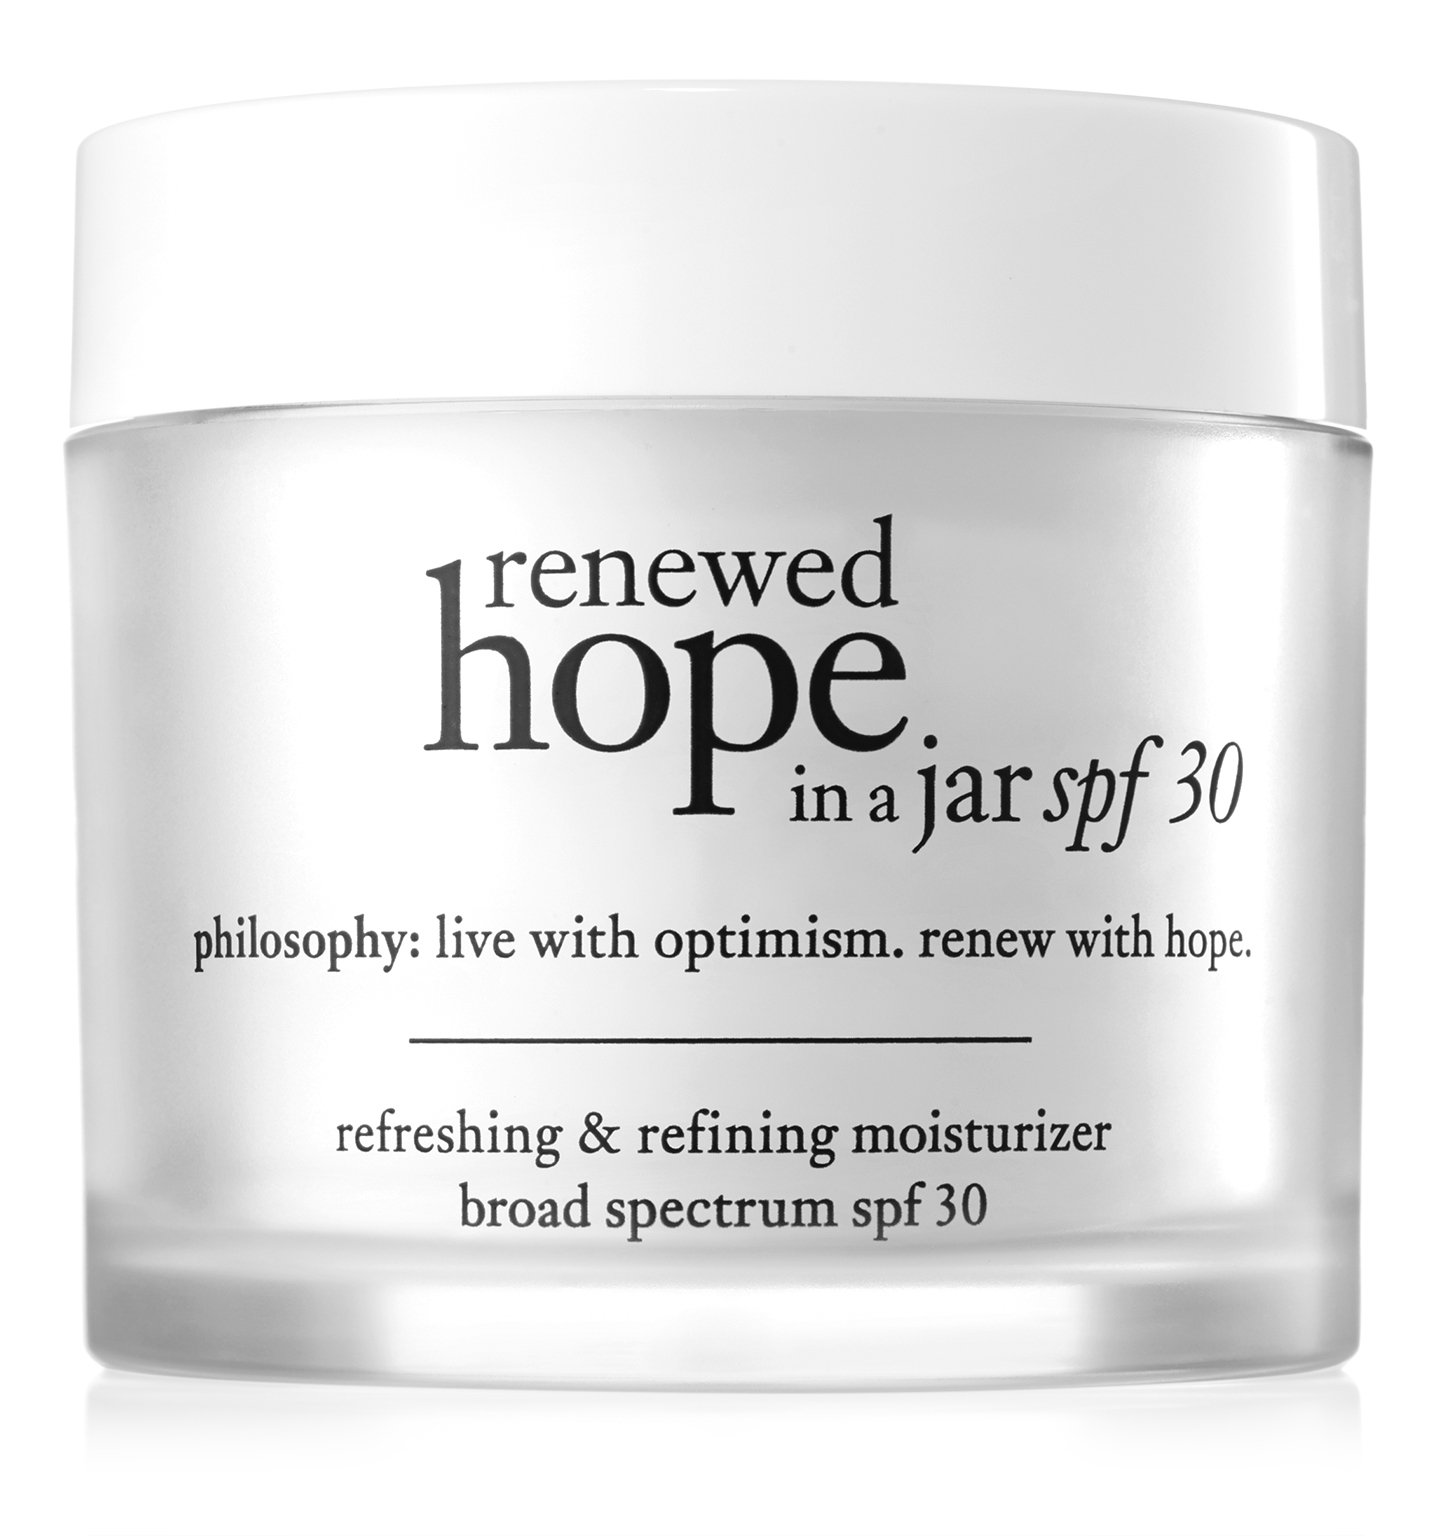 renewed hope in a jar spf 30 face moisturizer